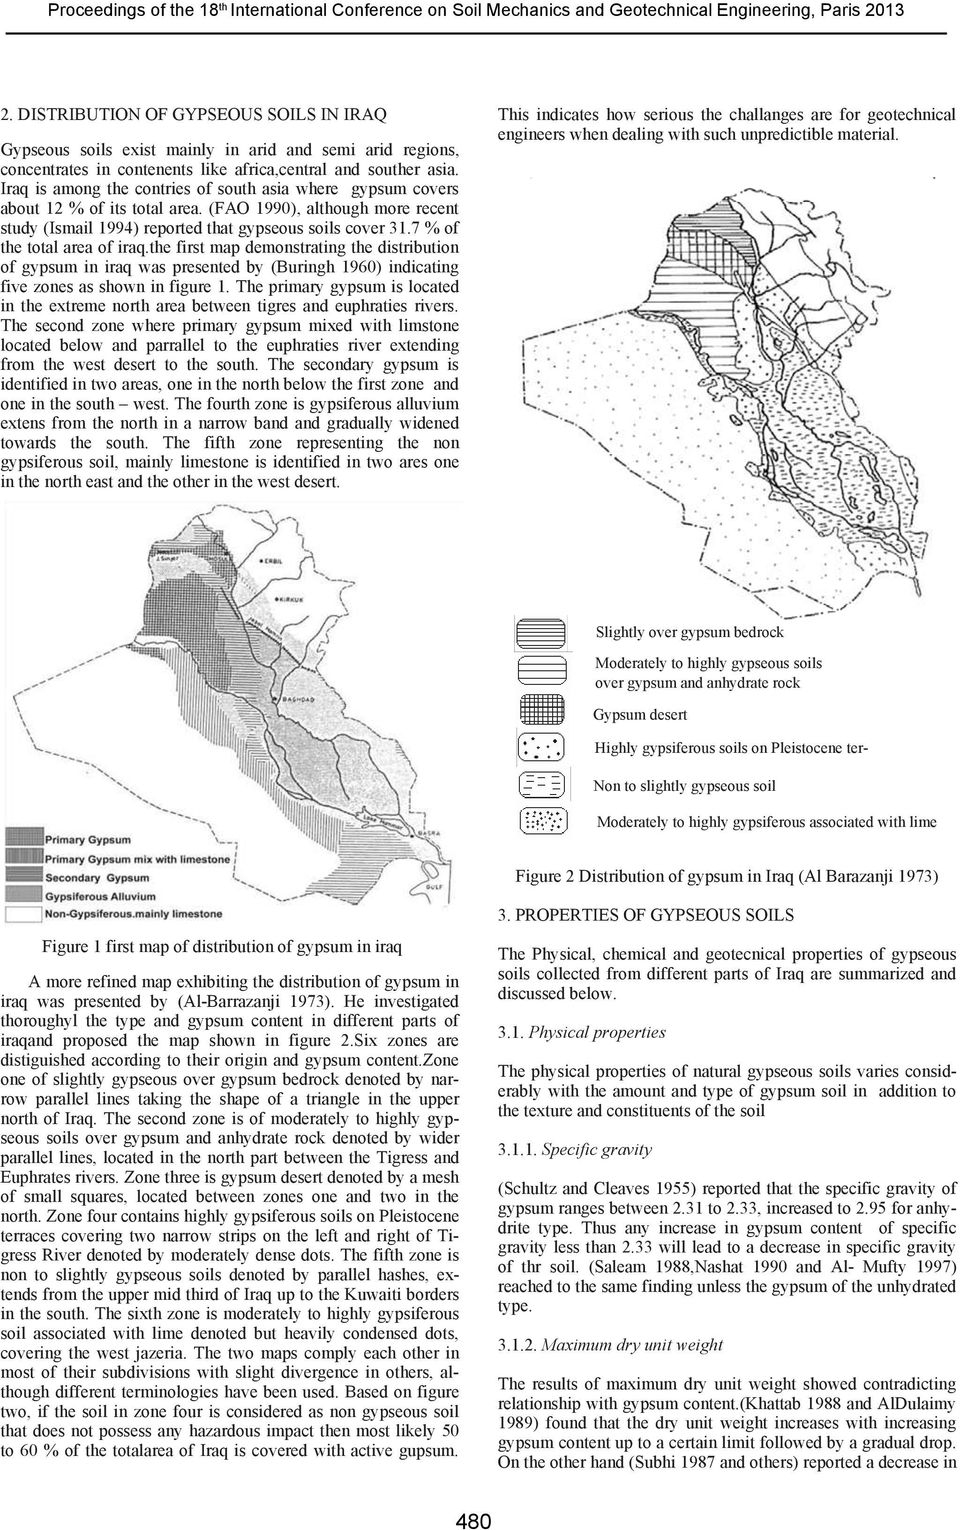 7 % of the total area of iraq.the first map demonstrating the distribution of gypsum in iraq was presented by (Buringh 1960) indicating five zones as shown in figure 1.